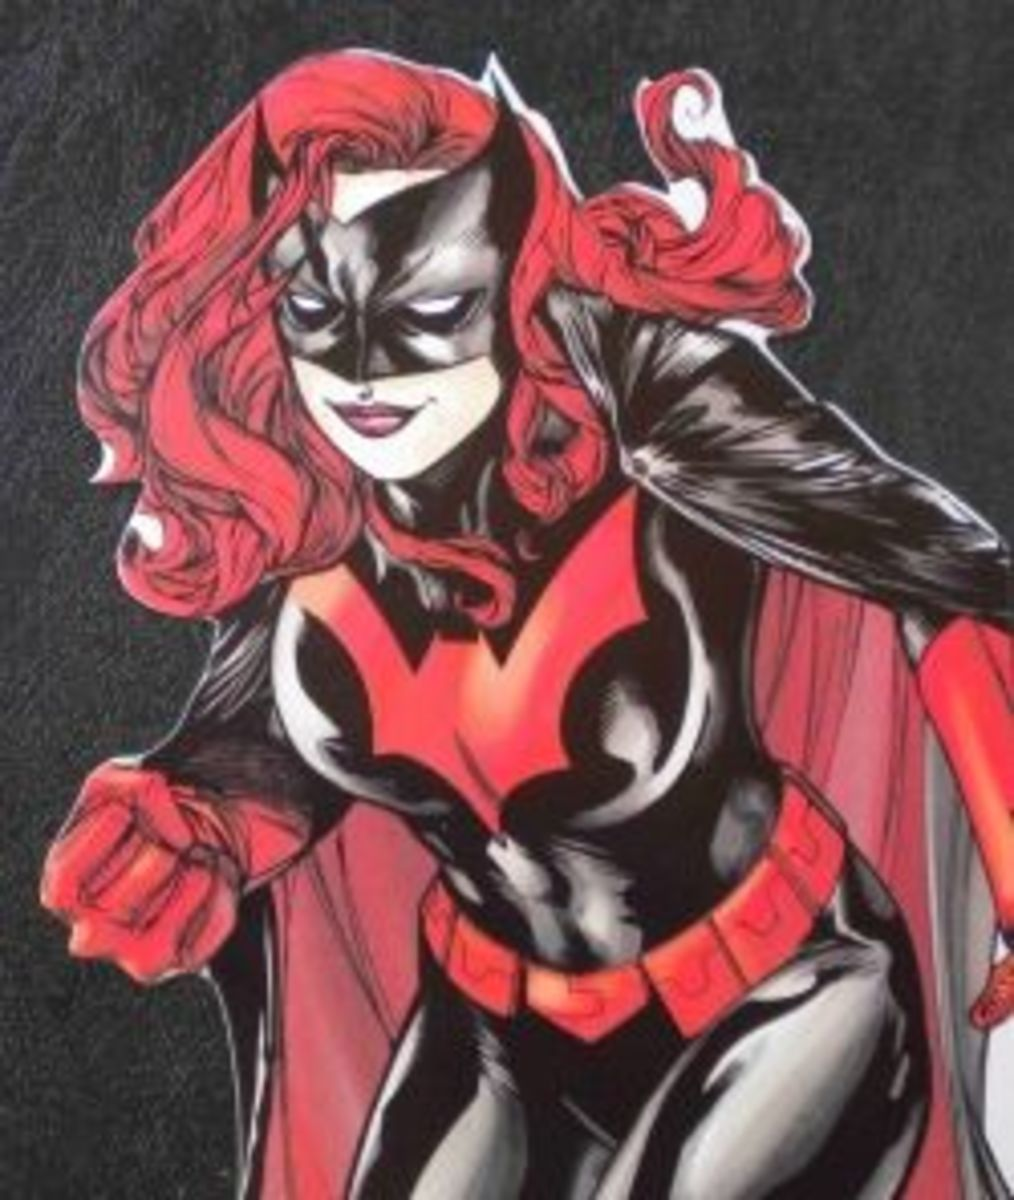 Batwoman of DC Comics fame